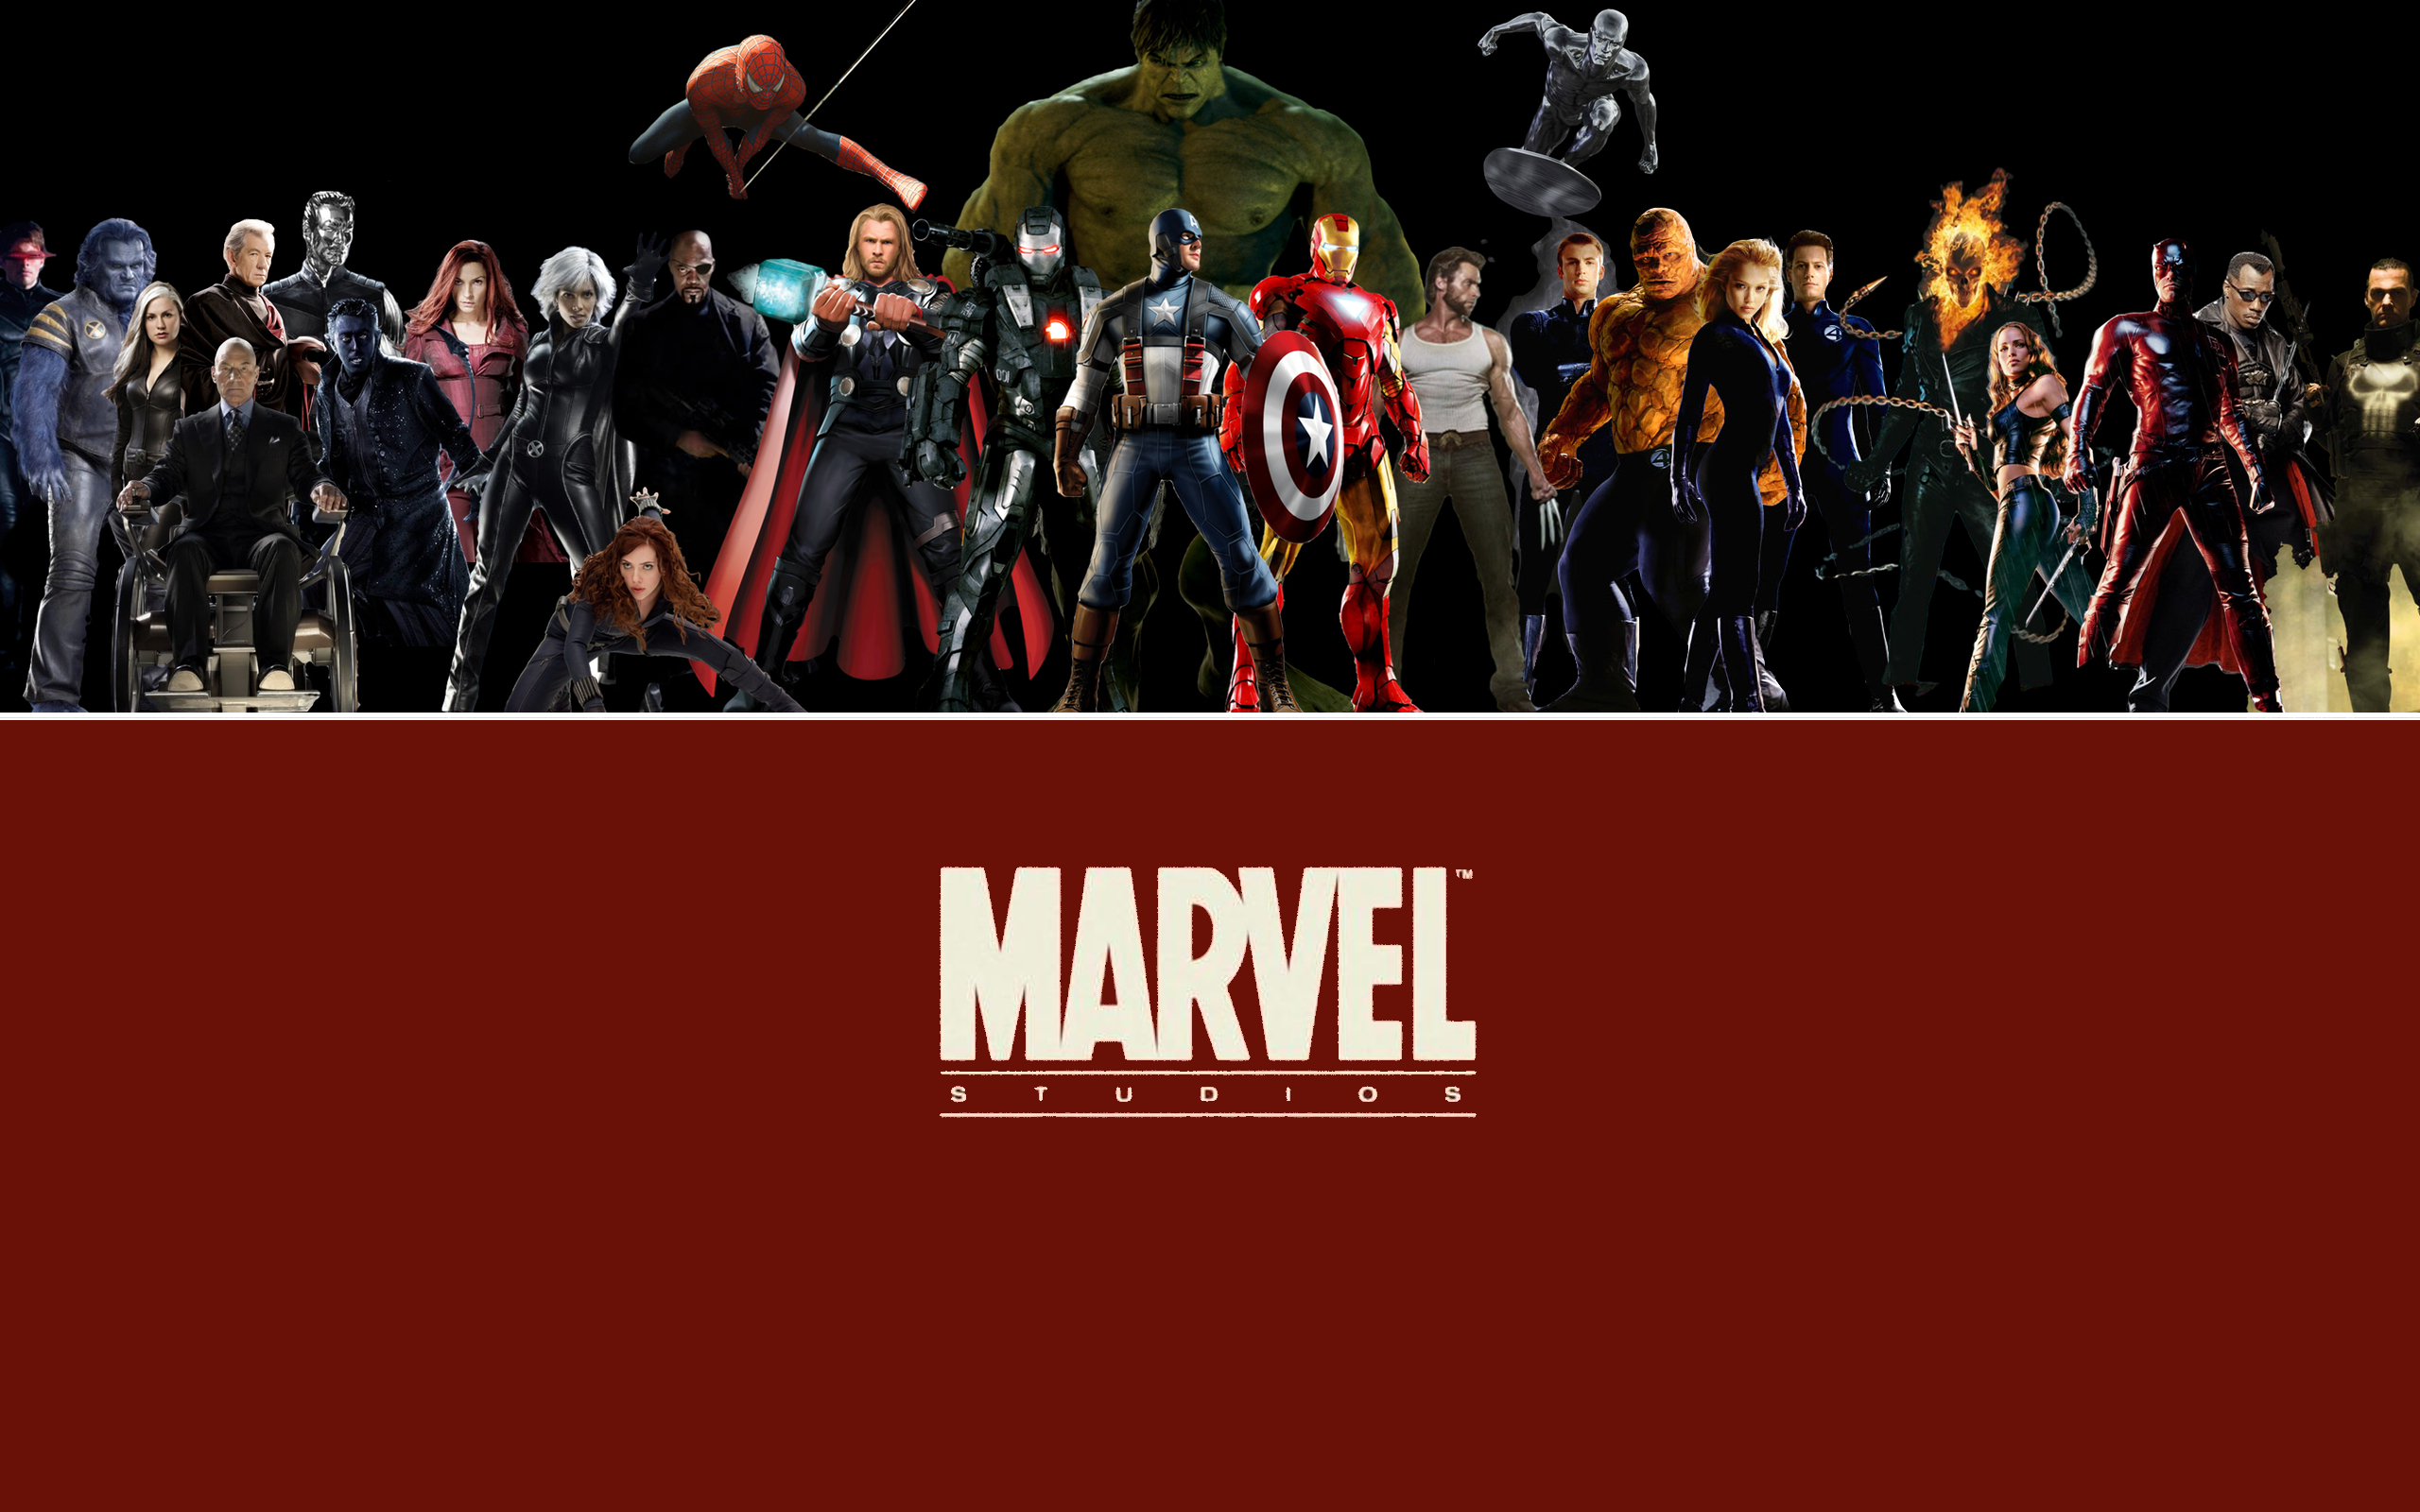 http://images2.fanpop.com/image/photos/13600000/Marvel-Movies-the-avengers-13621669-2560-1600.jpg